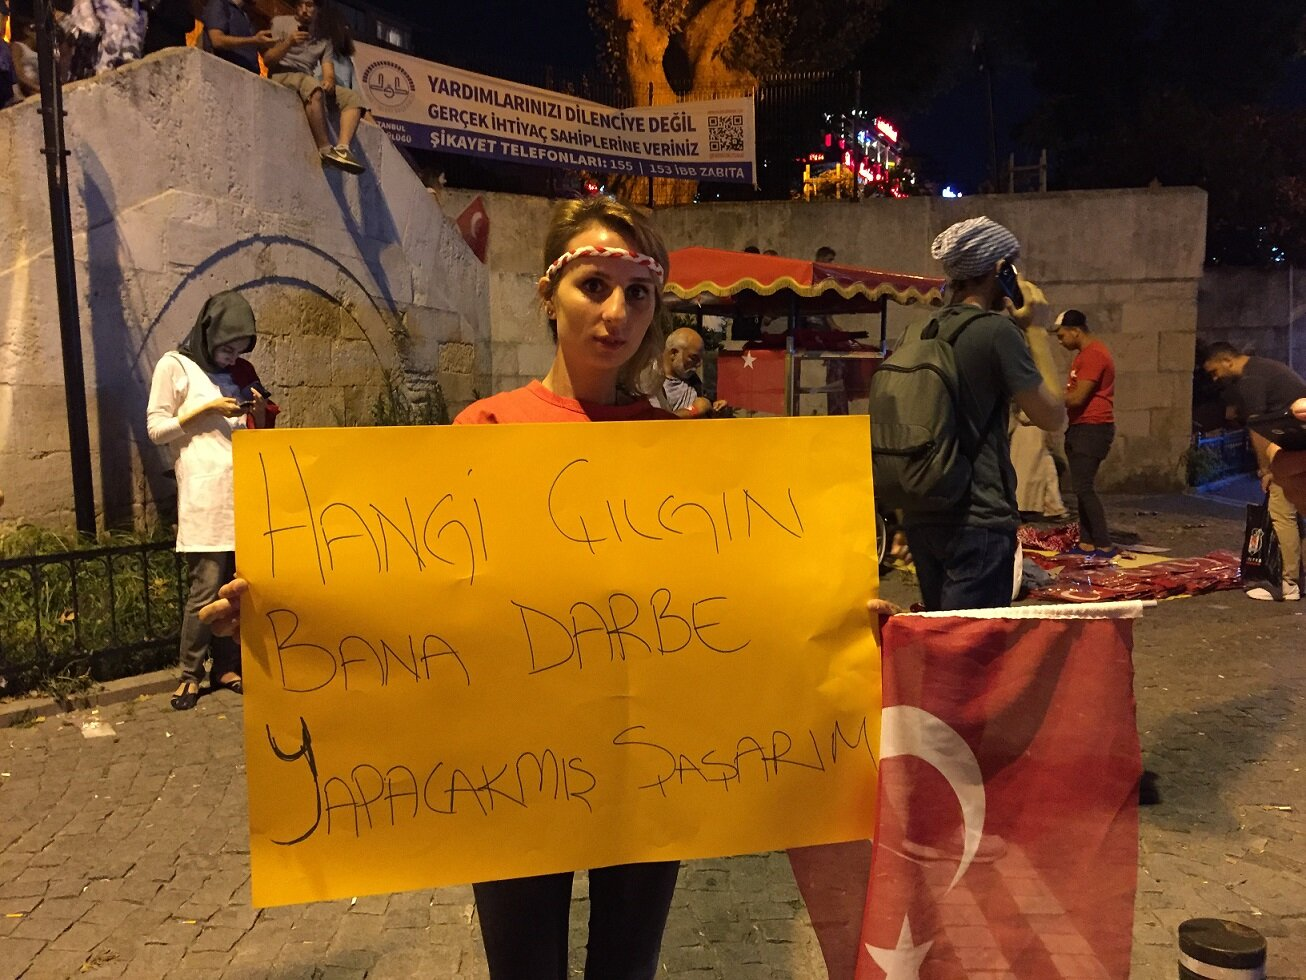 People attending the democracy watch showed their reaction to the coup attempt with the banners they prepared.